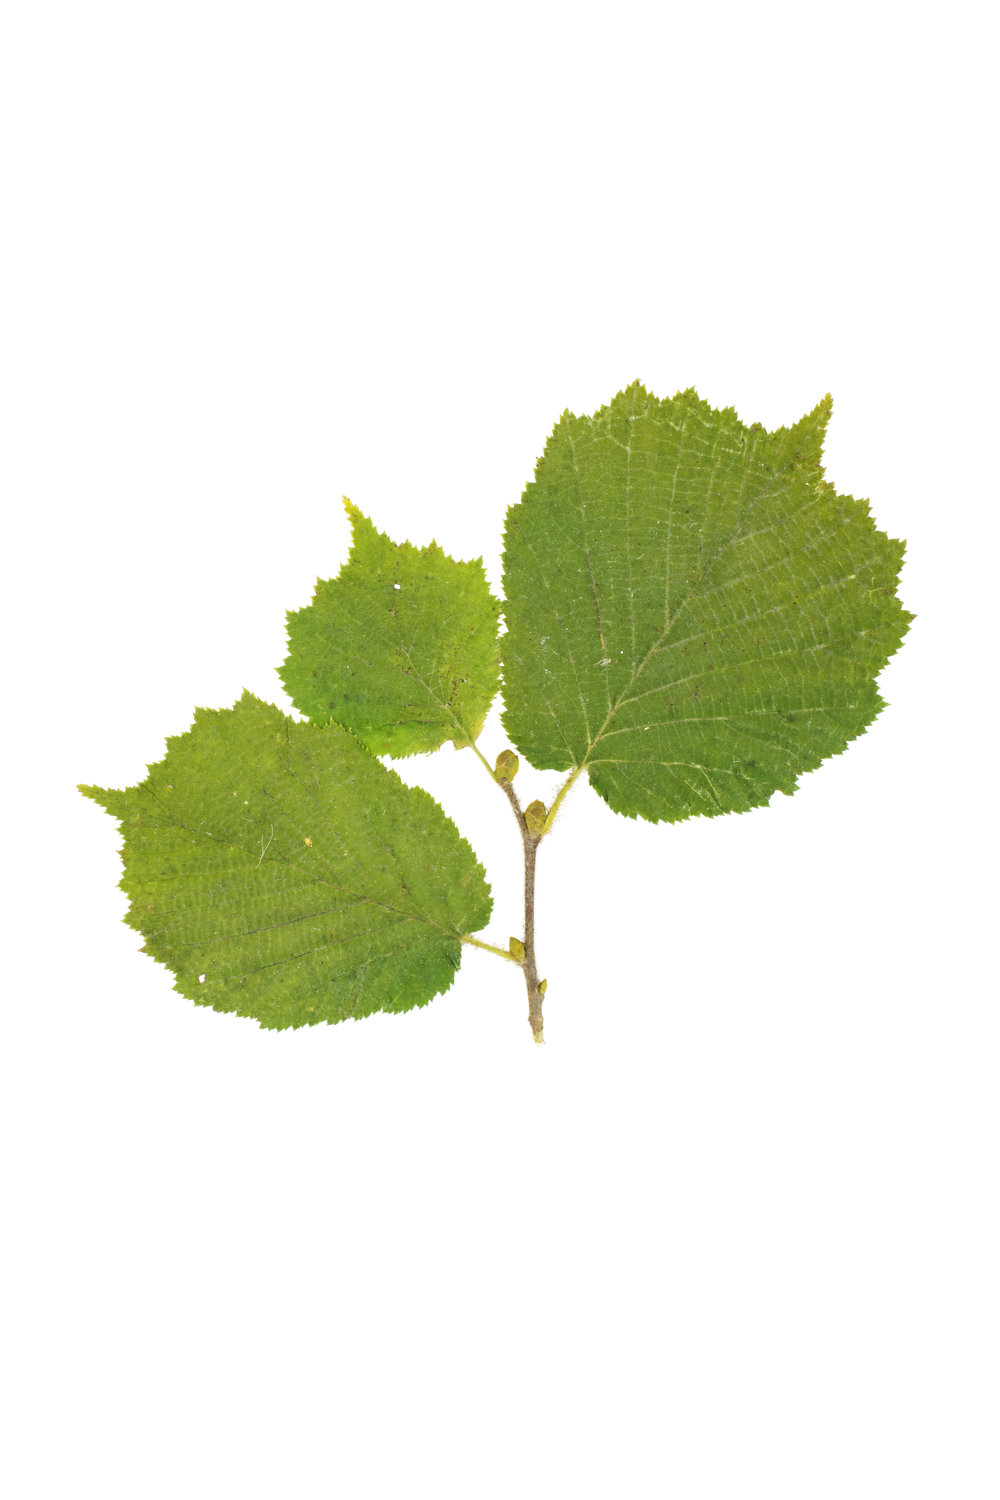 Corylus avellana / Common Hazel